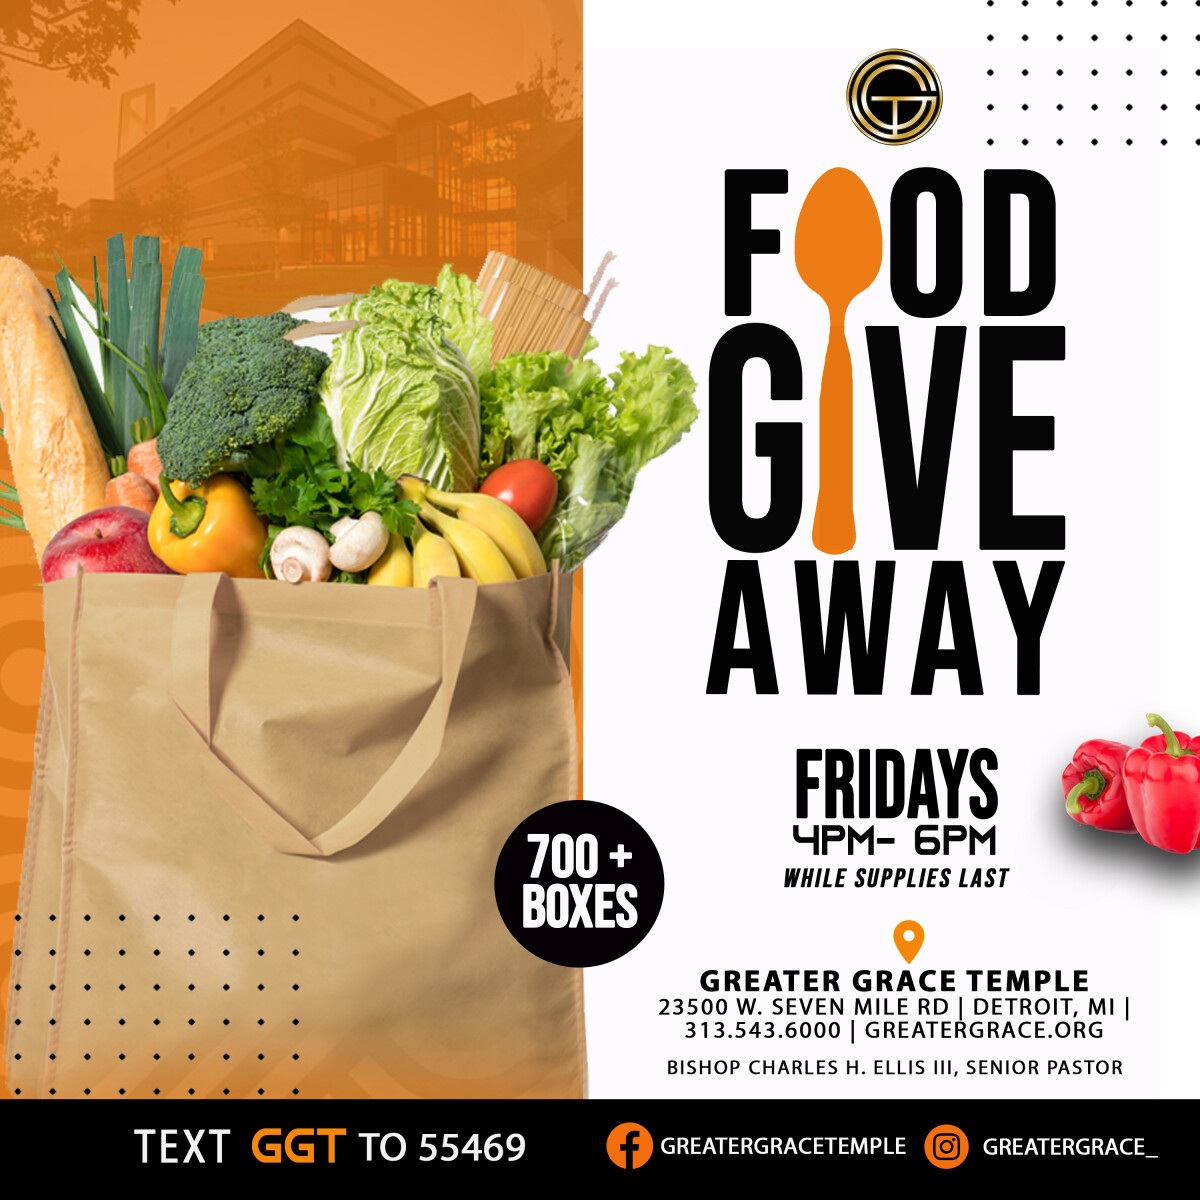 Greater Grace Food Giveaway